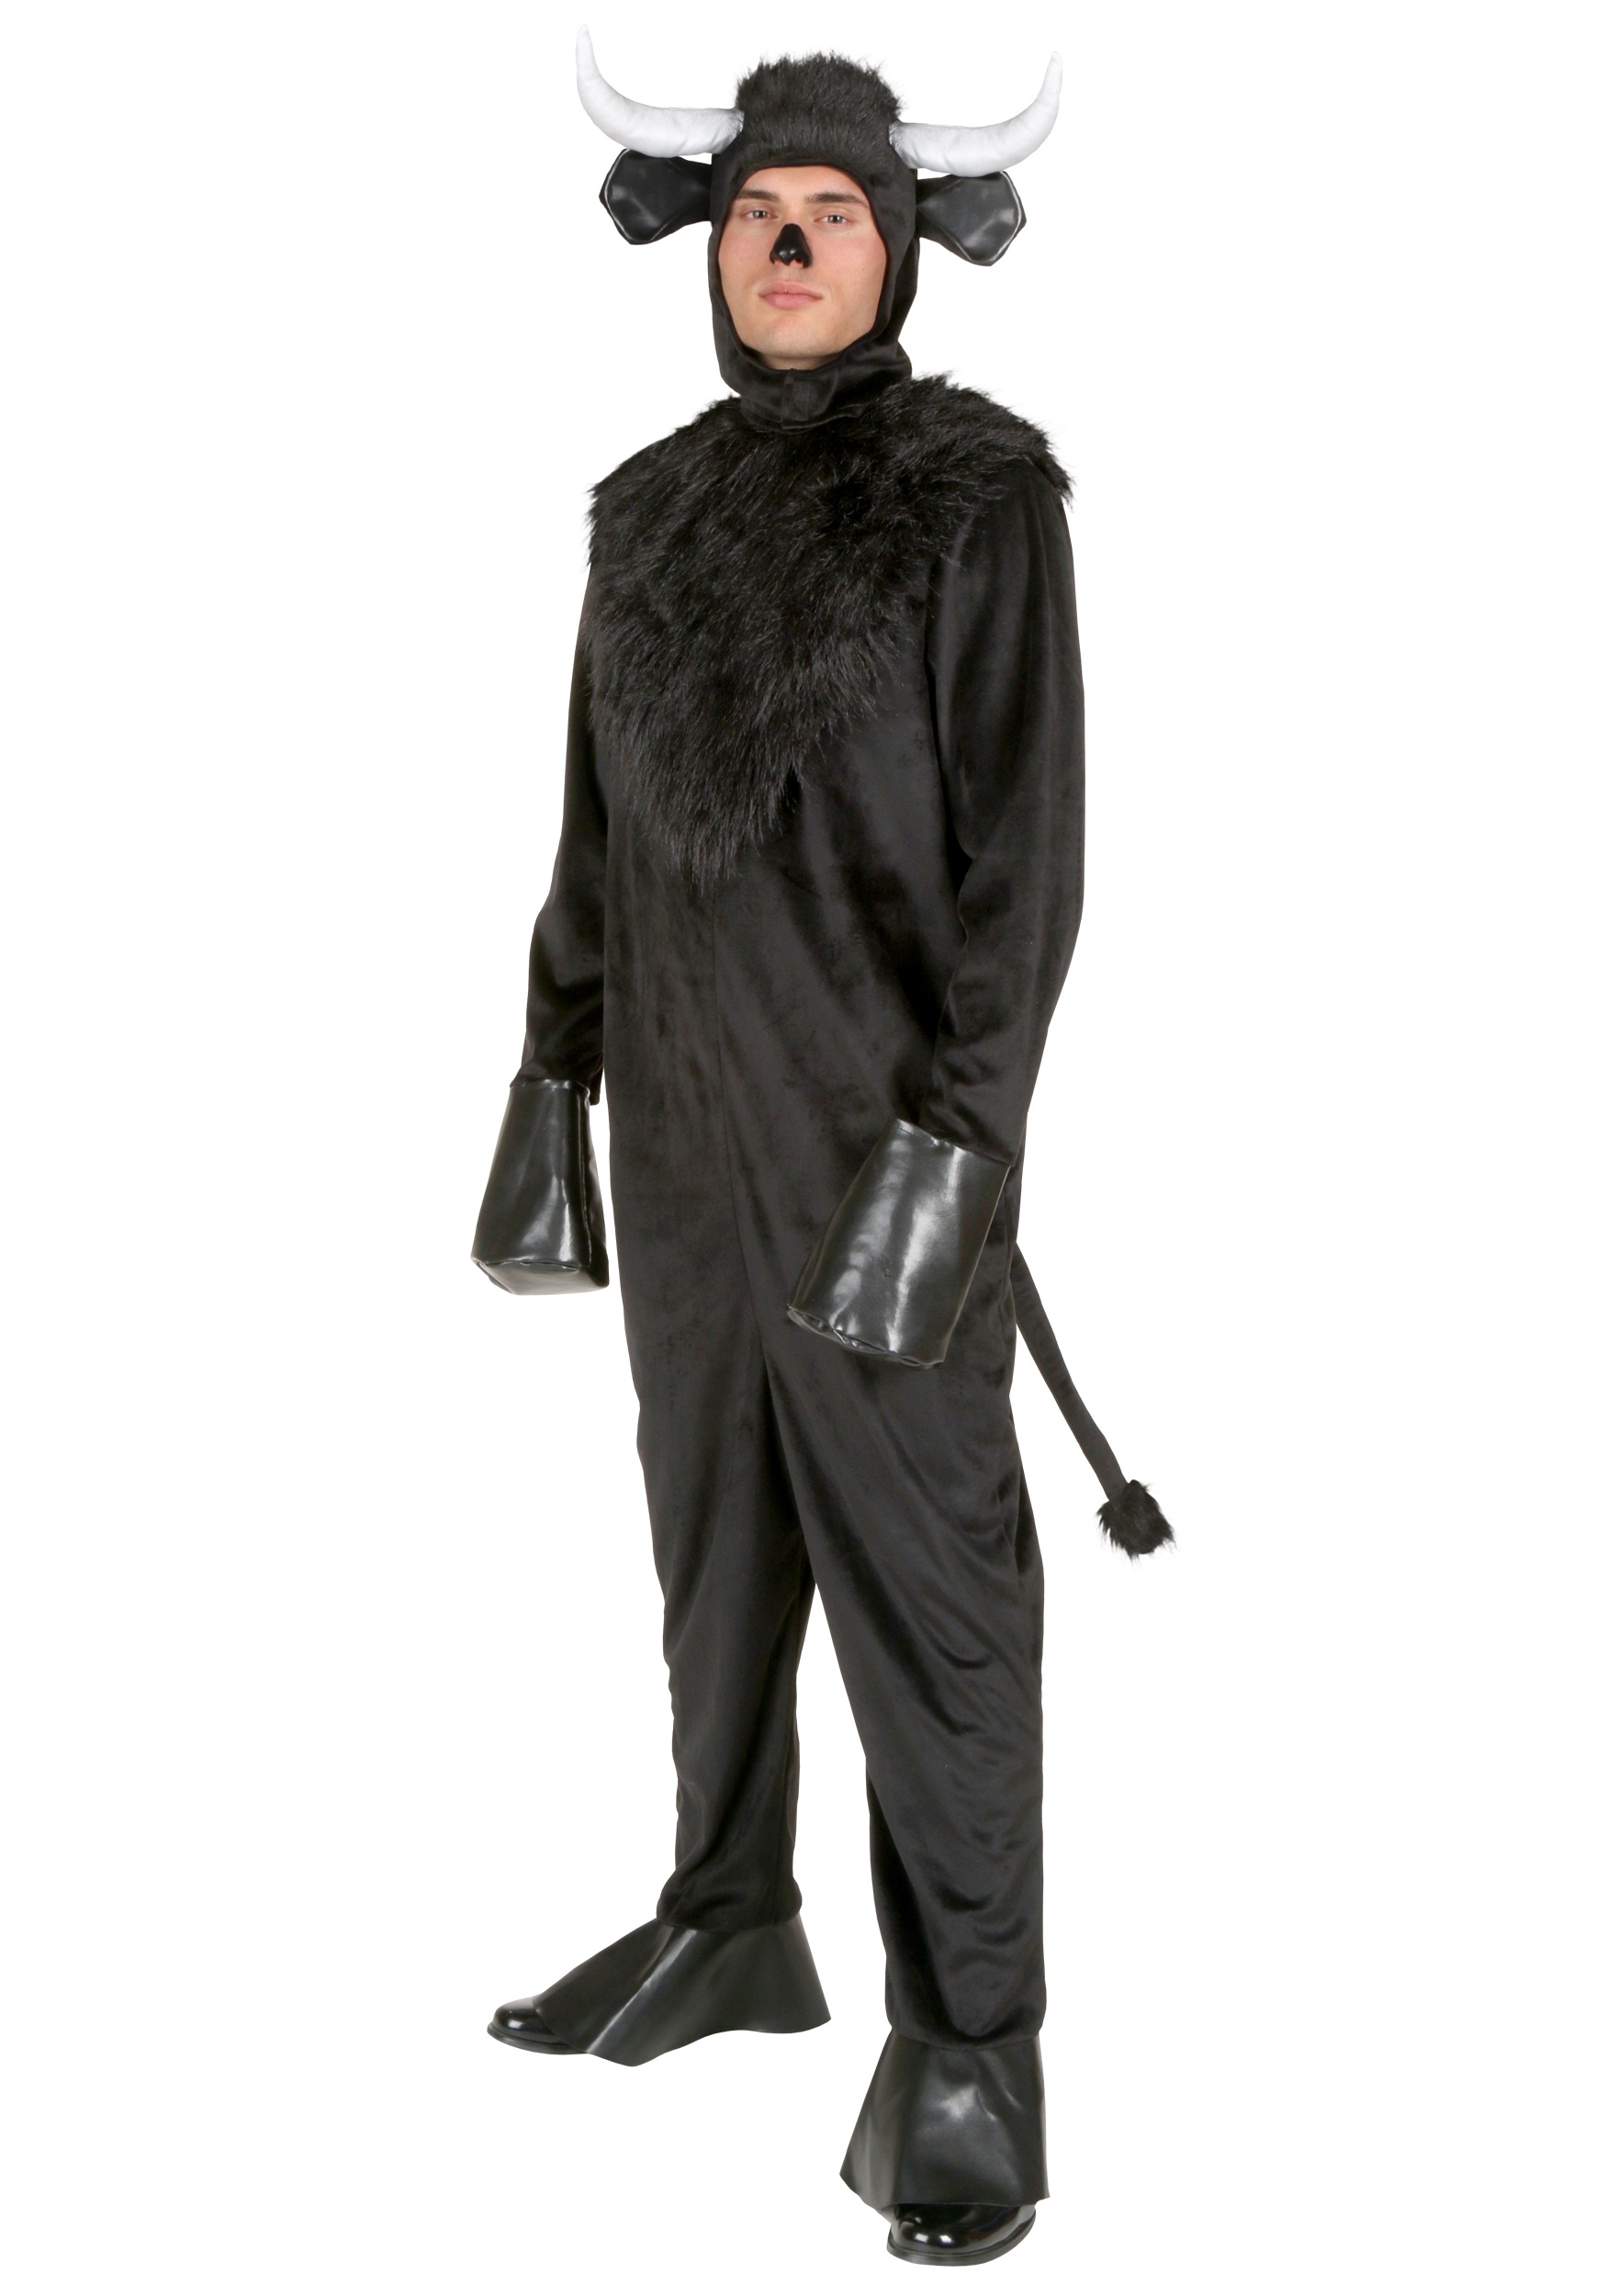 Bull Costume for Adults